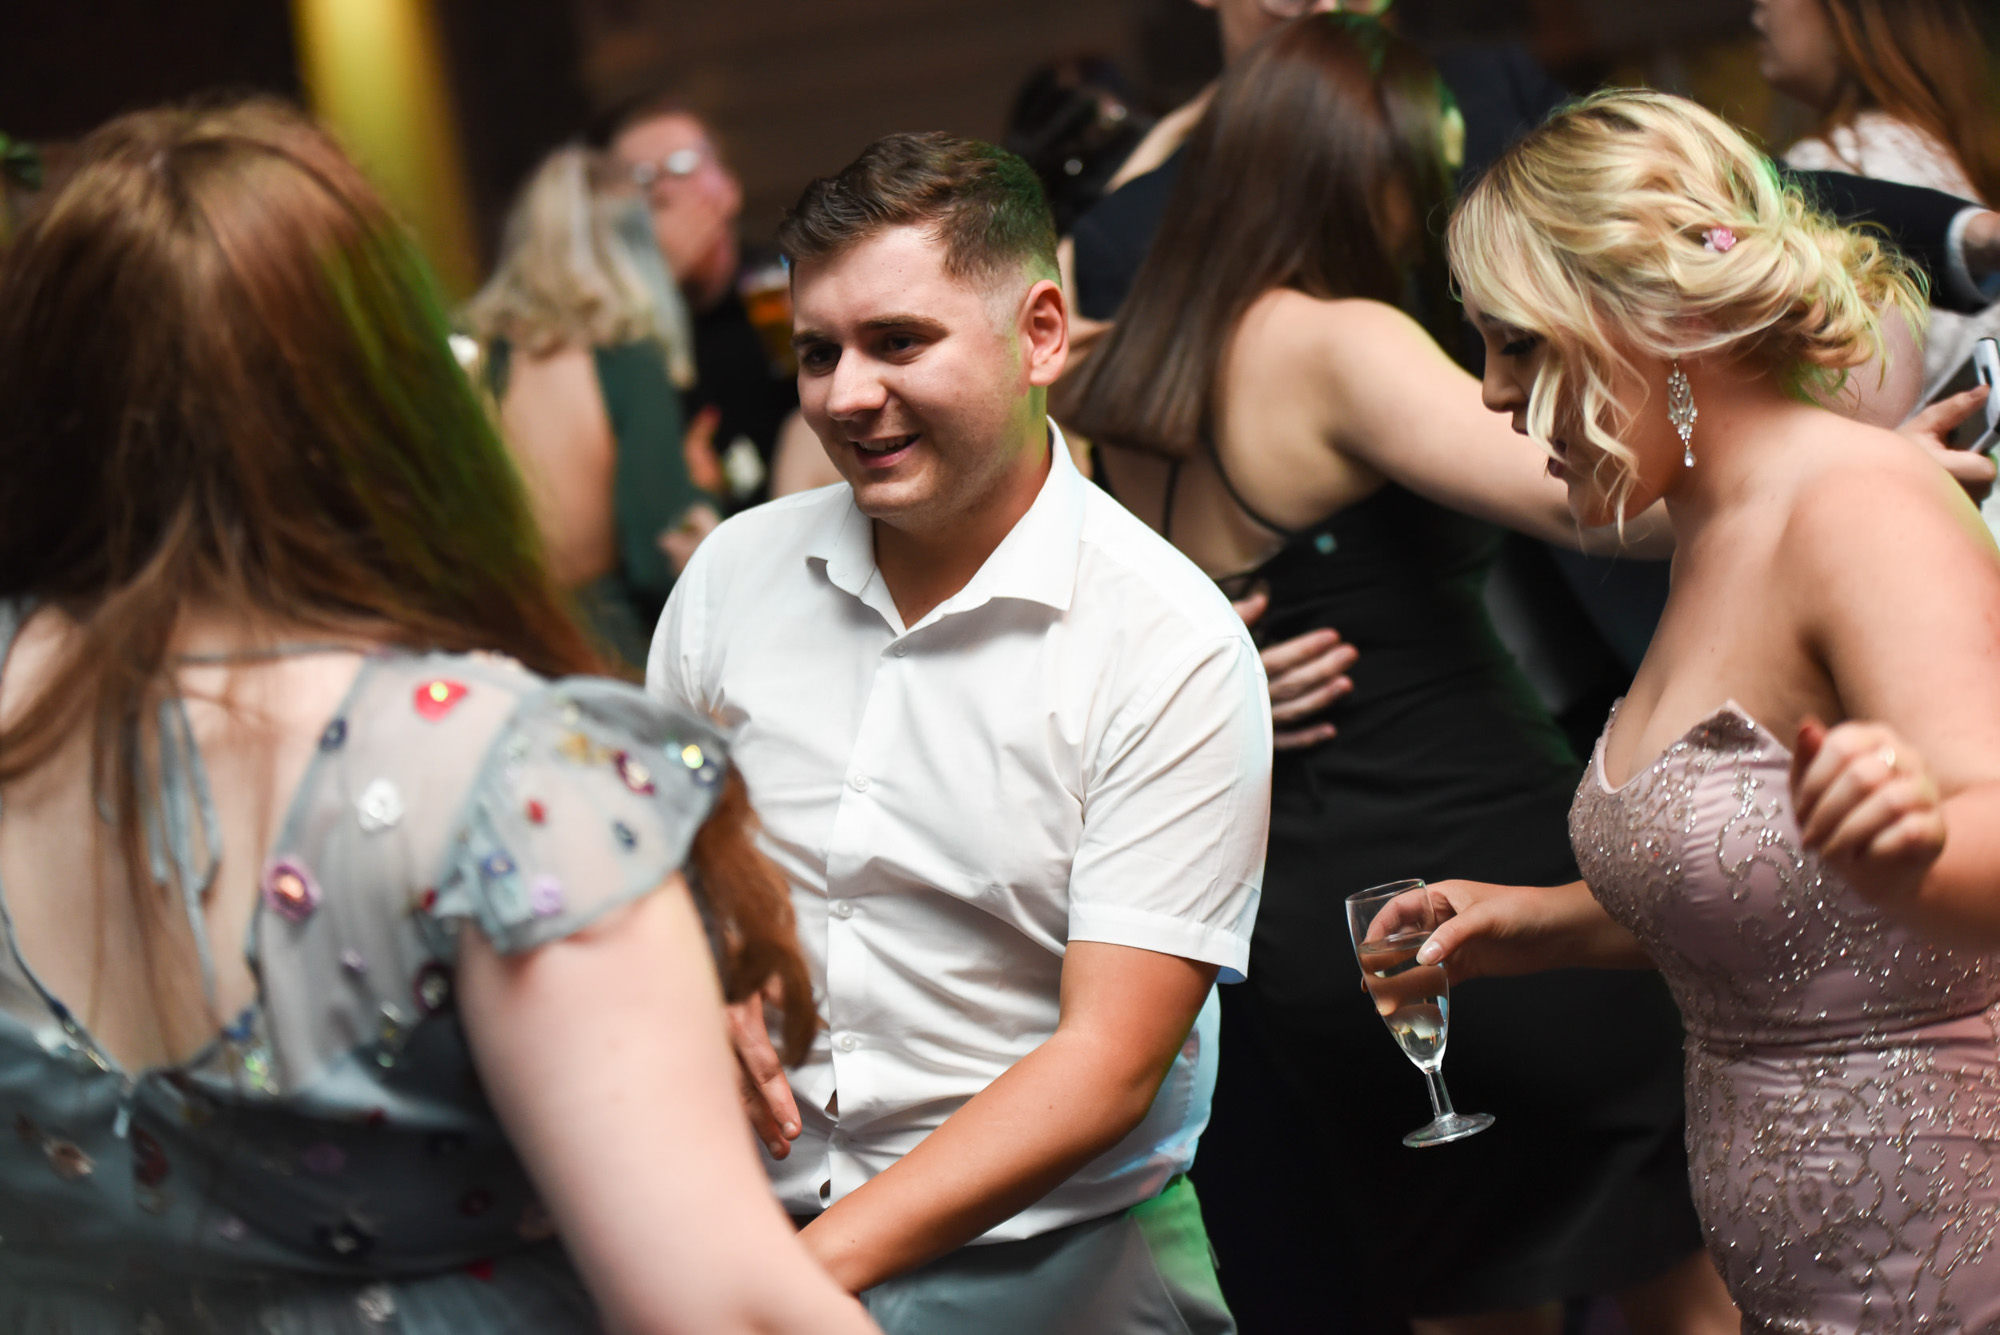 UCLAN_MT_BALL_2019_455.jpg